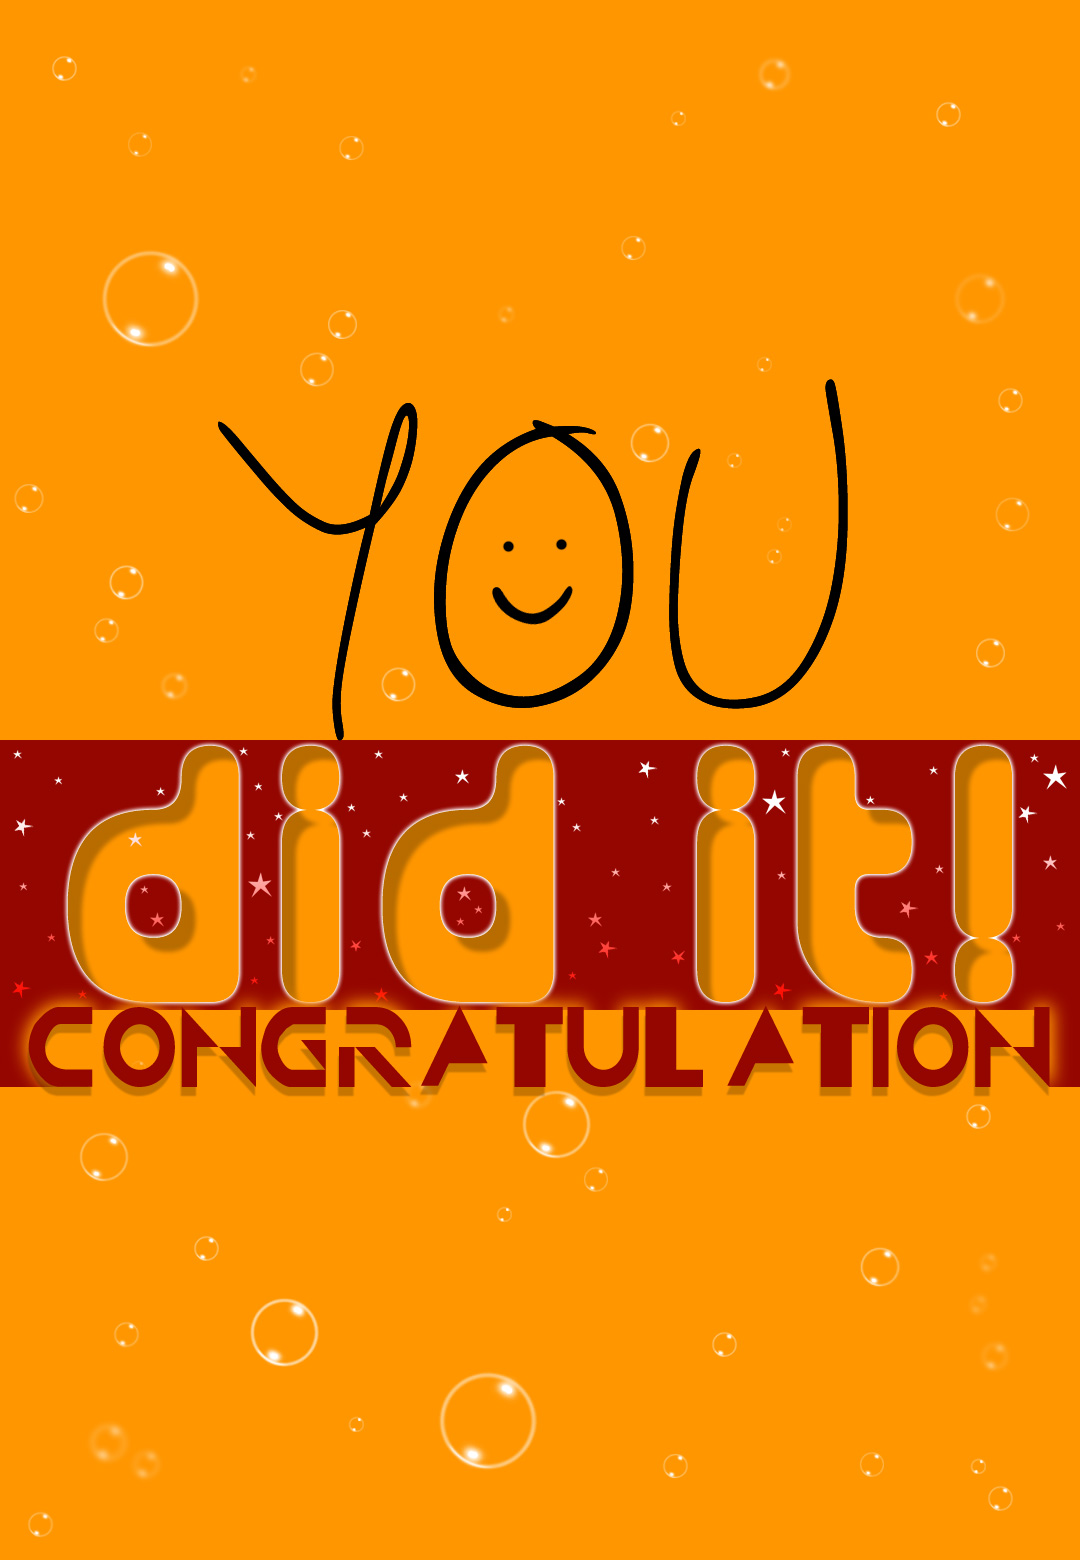 6 Best Images of Free Printable Congrats Cards - Free ...